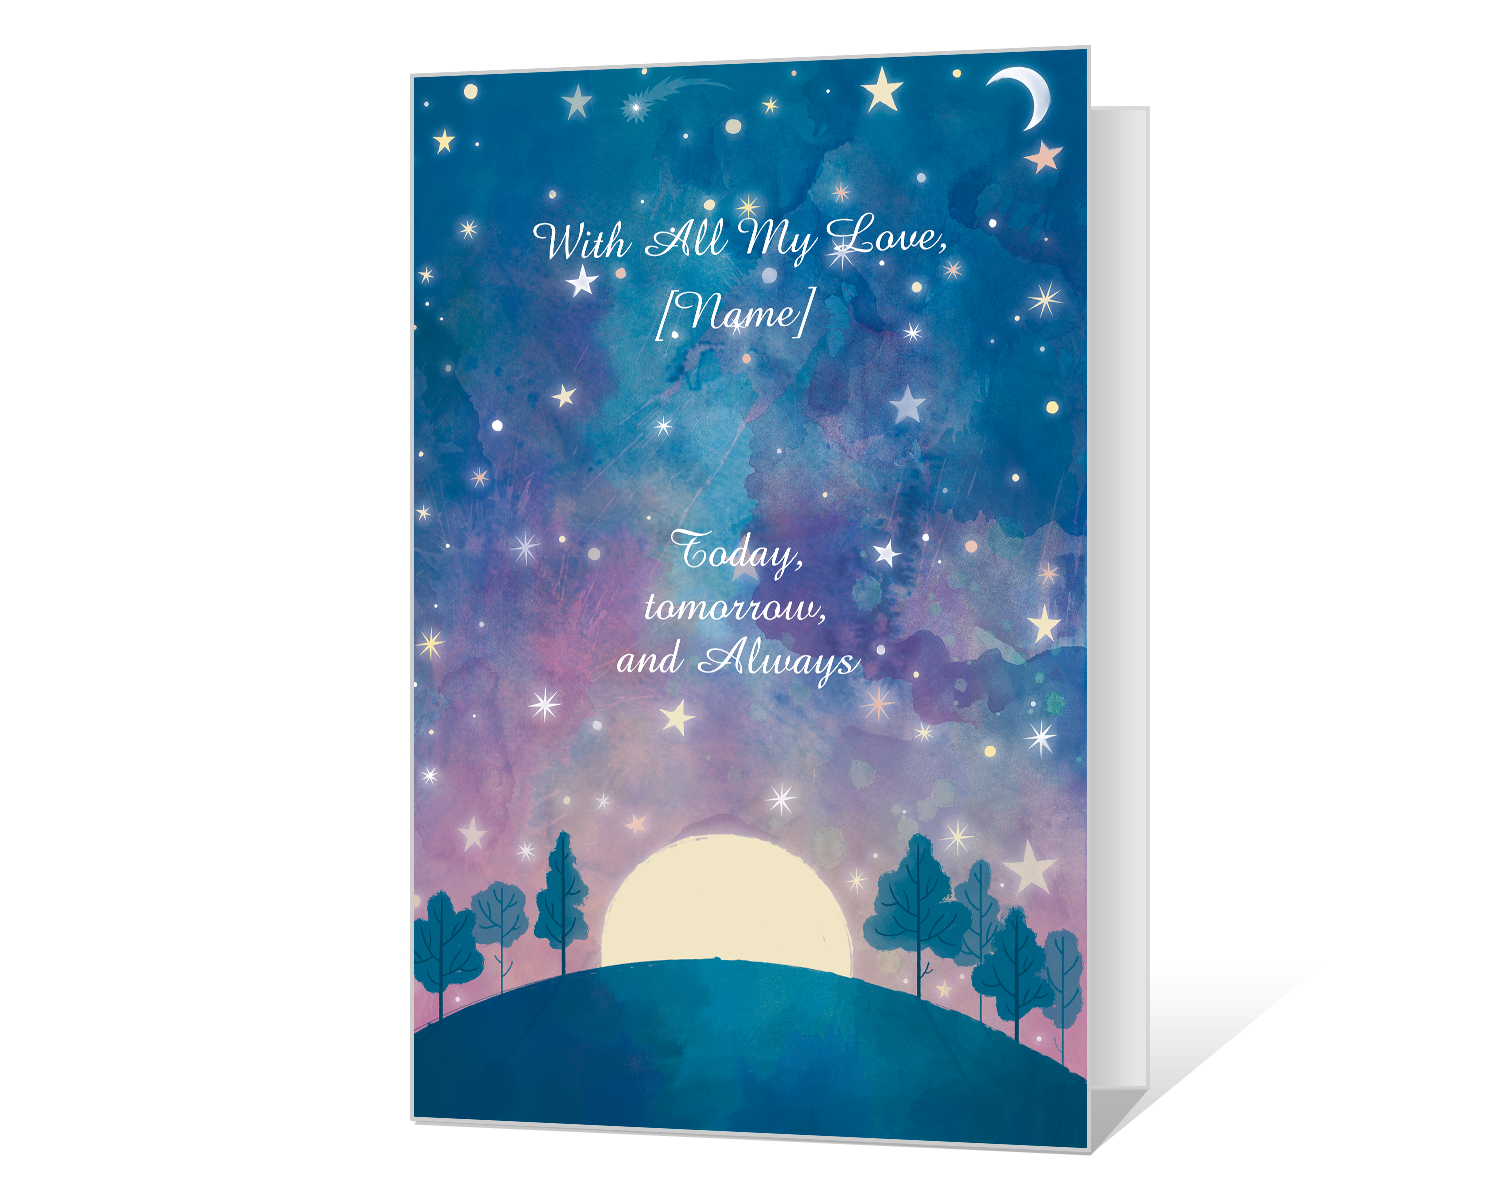 Birthday Blessing Printable Cards Blue Mountain Love Birthday Cards Birthday Cards To Print Birthday Card Template Free